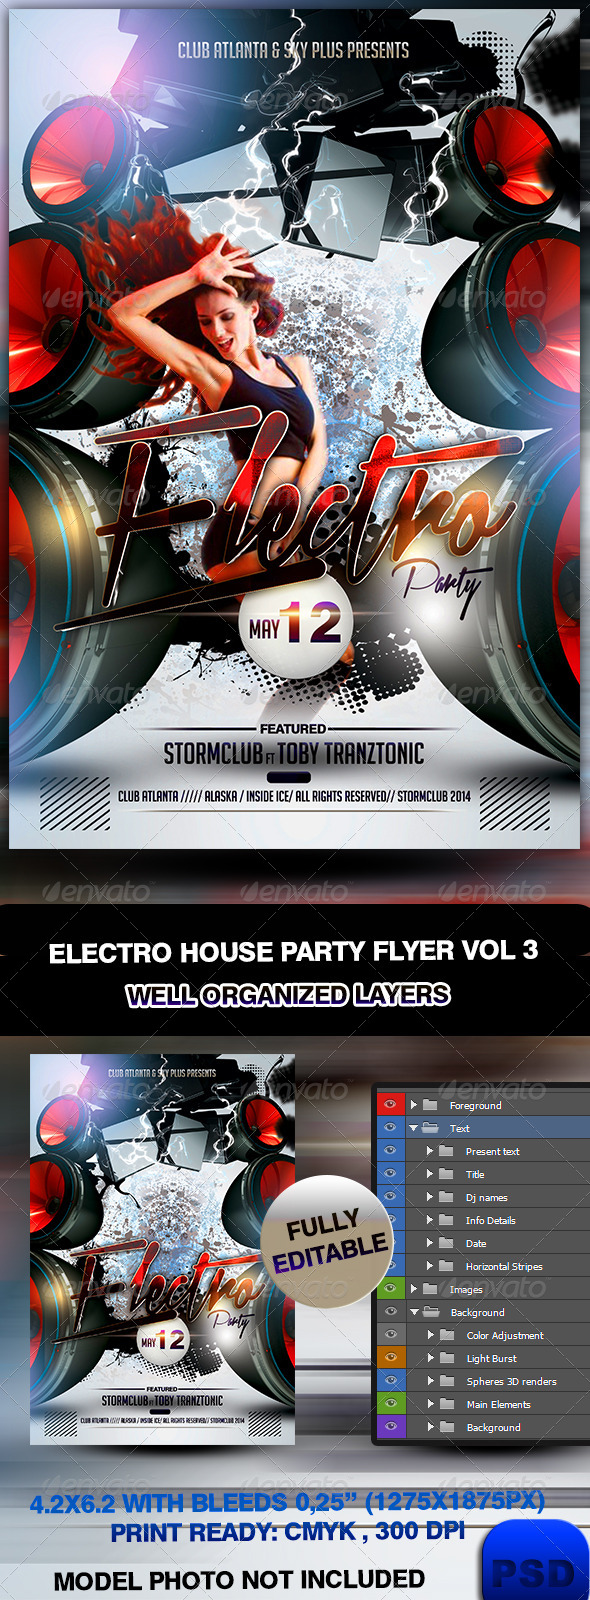 Electro House Party Flyer Vol 3